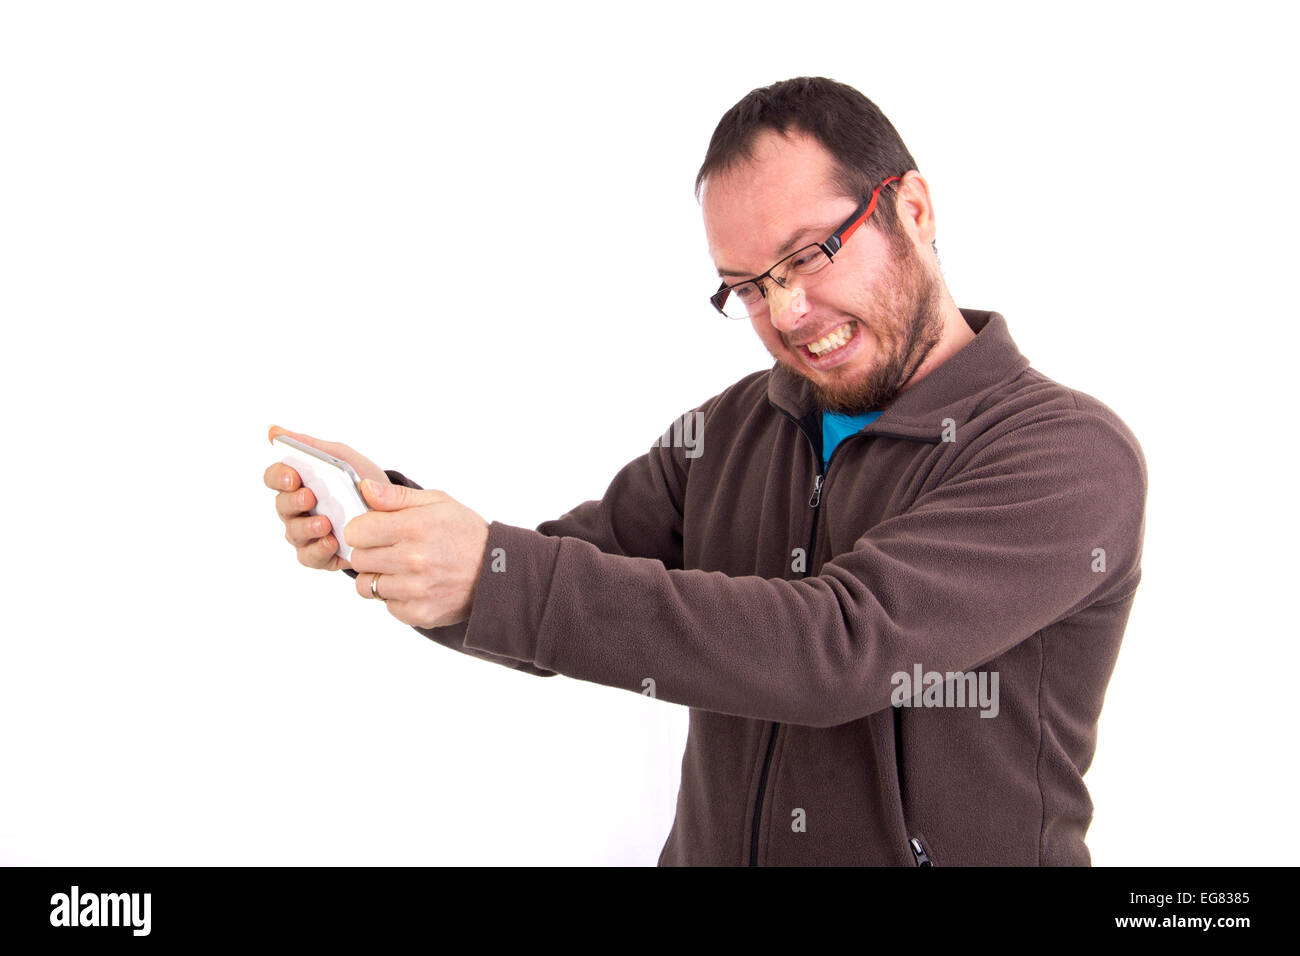 angry man sending text message on his mobile phone isolated on white background - Stock Image